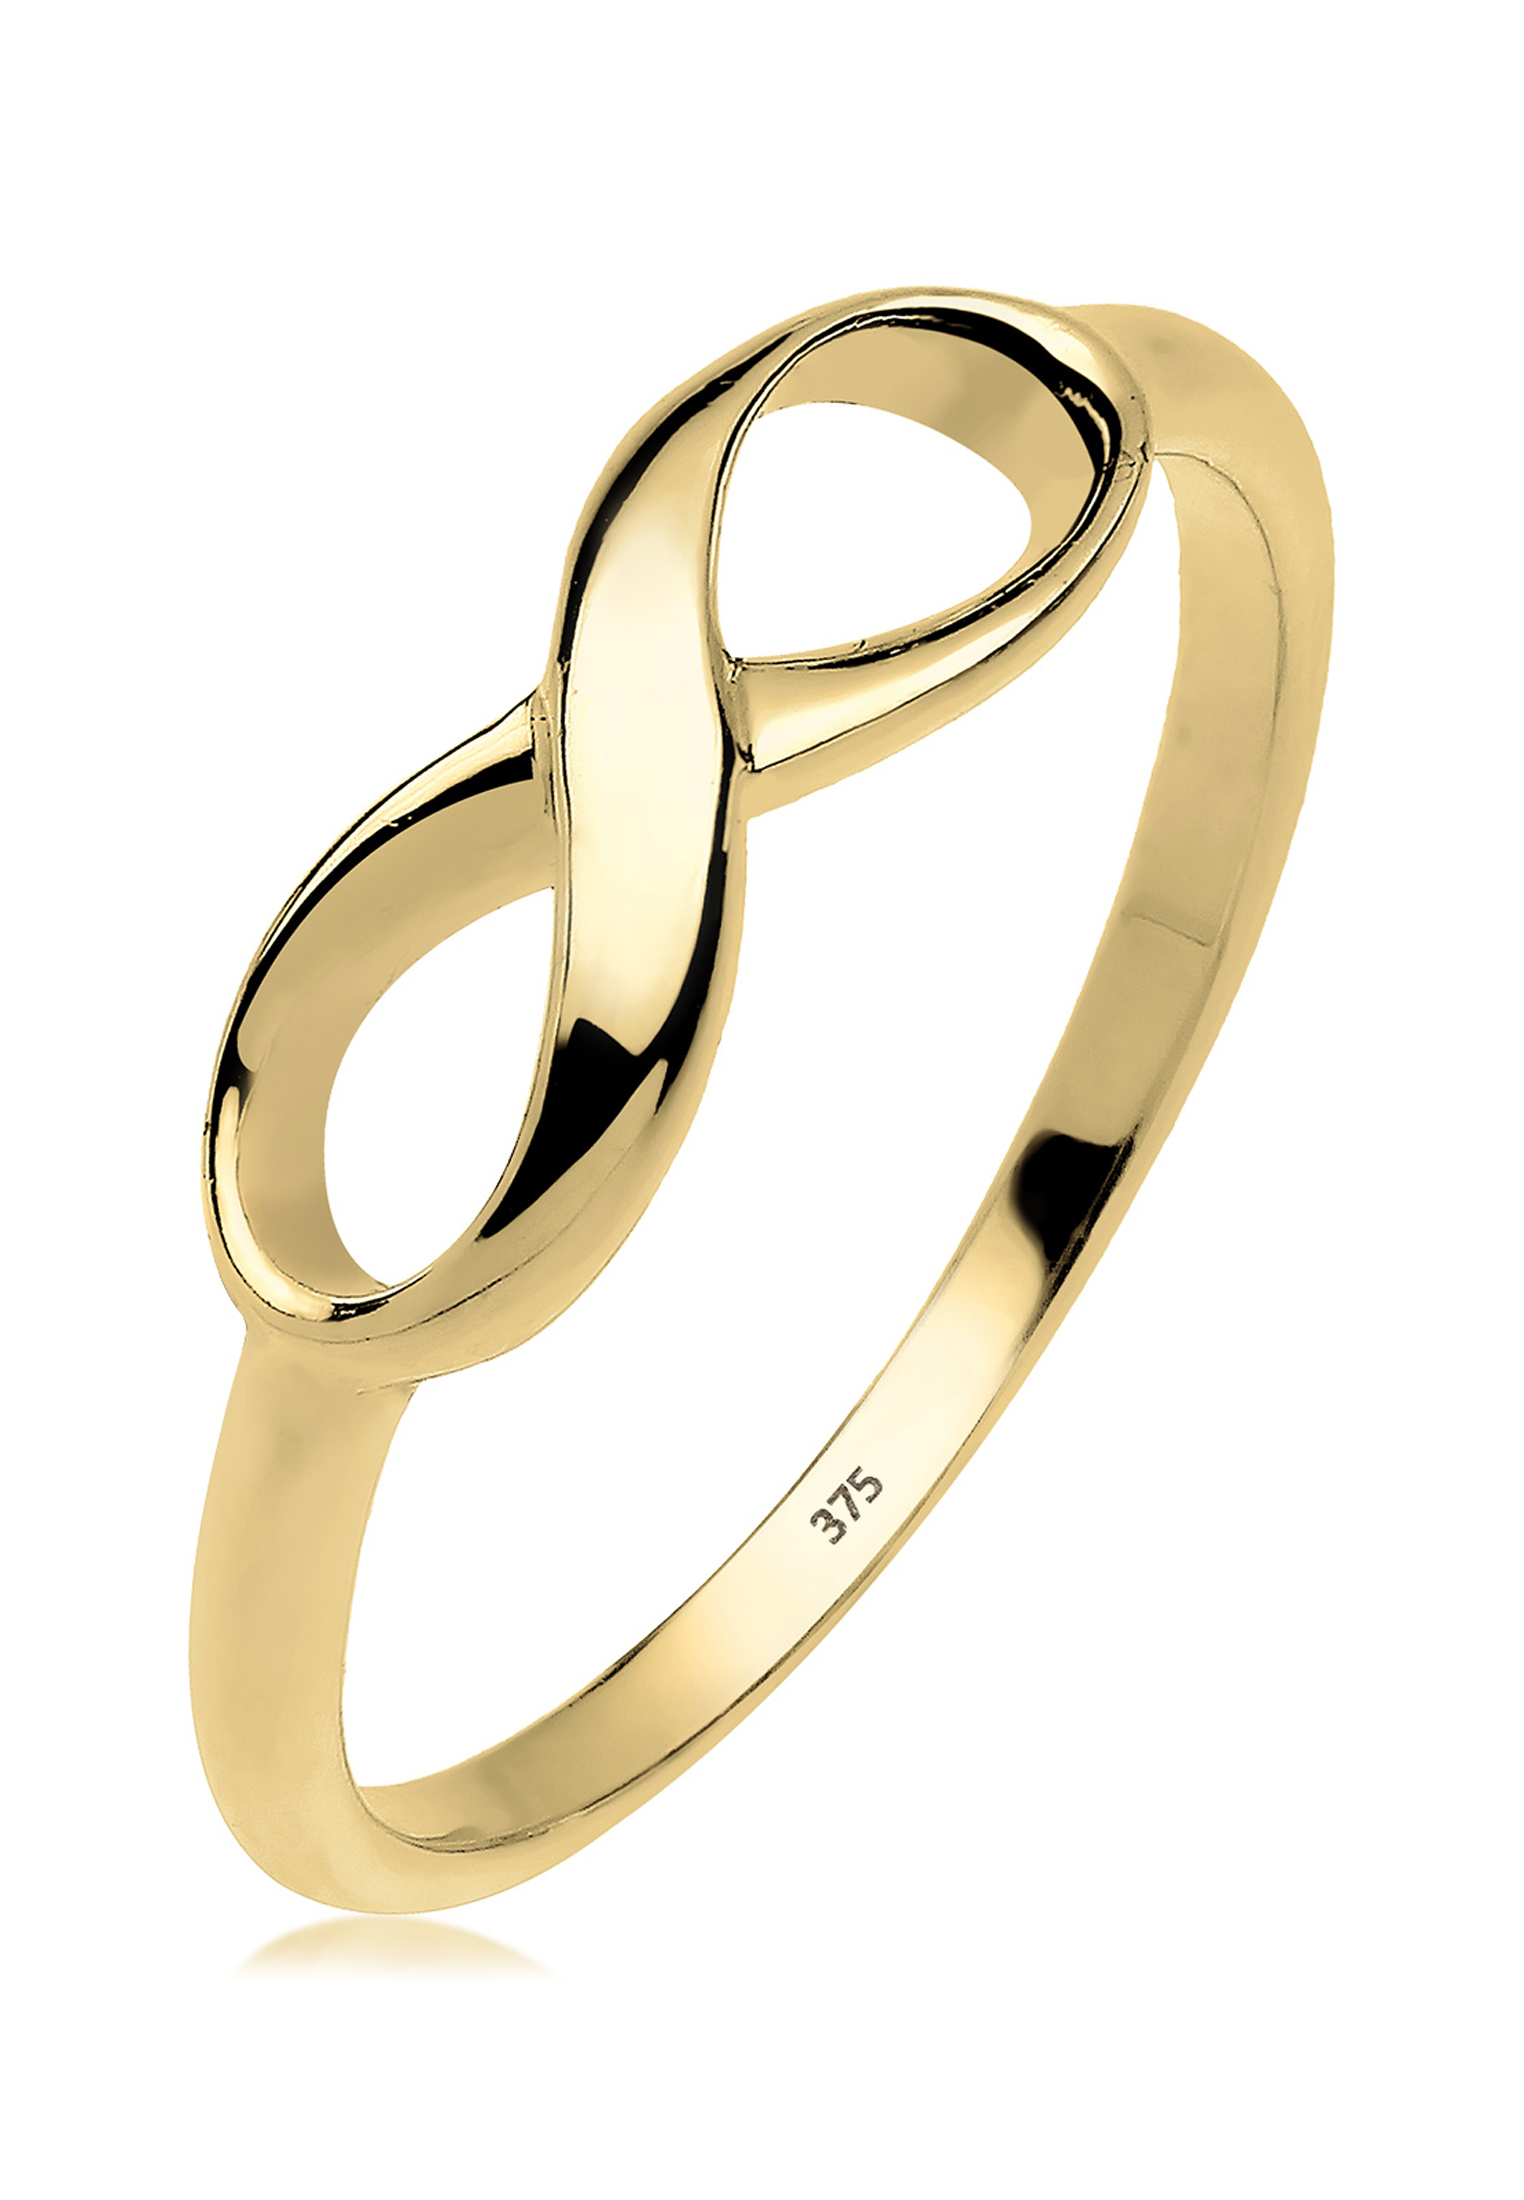 Ring Infinity | 375 Gelbgold